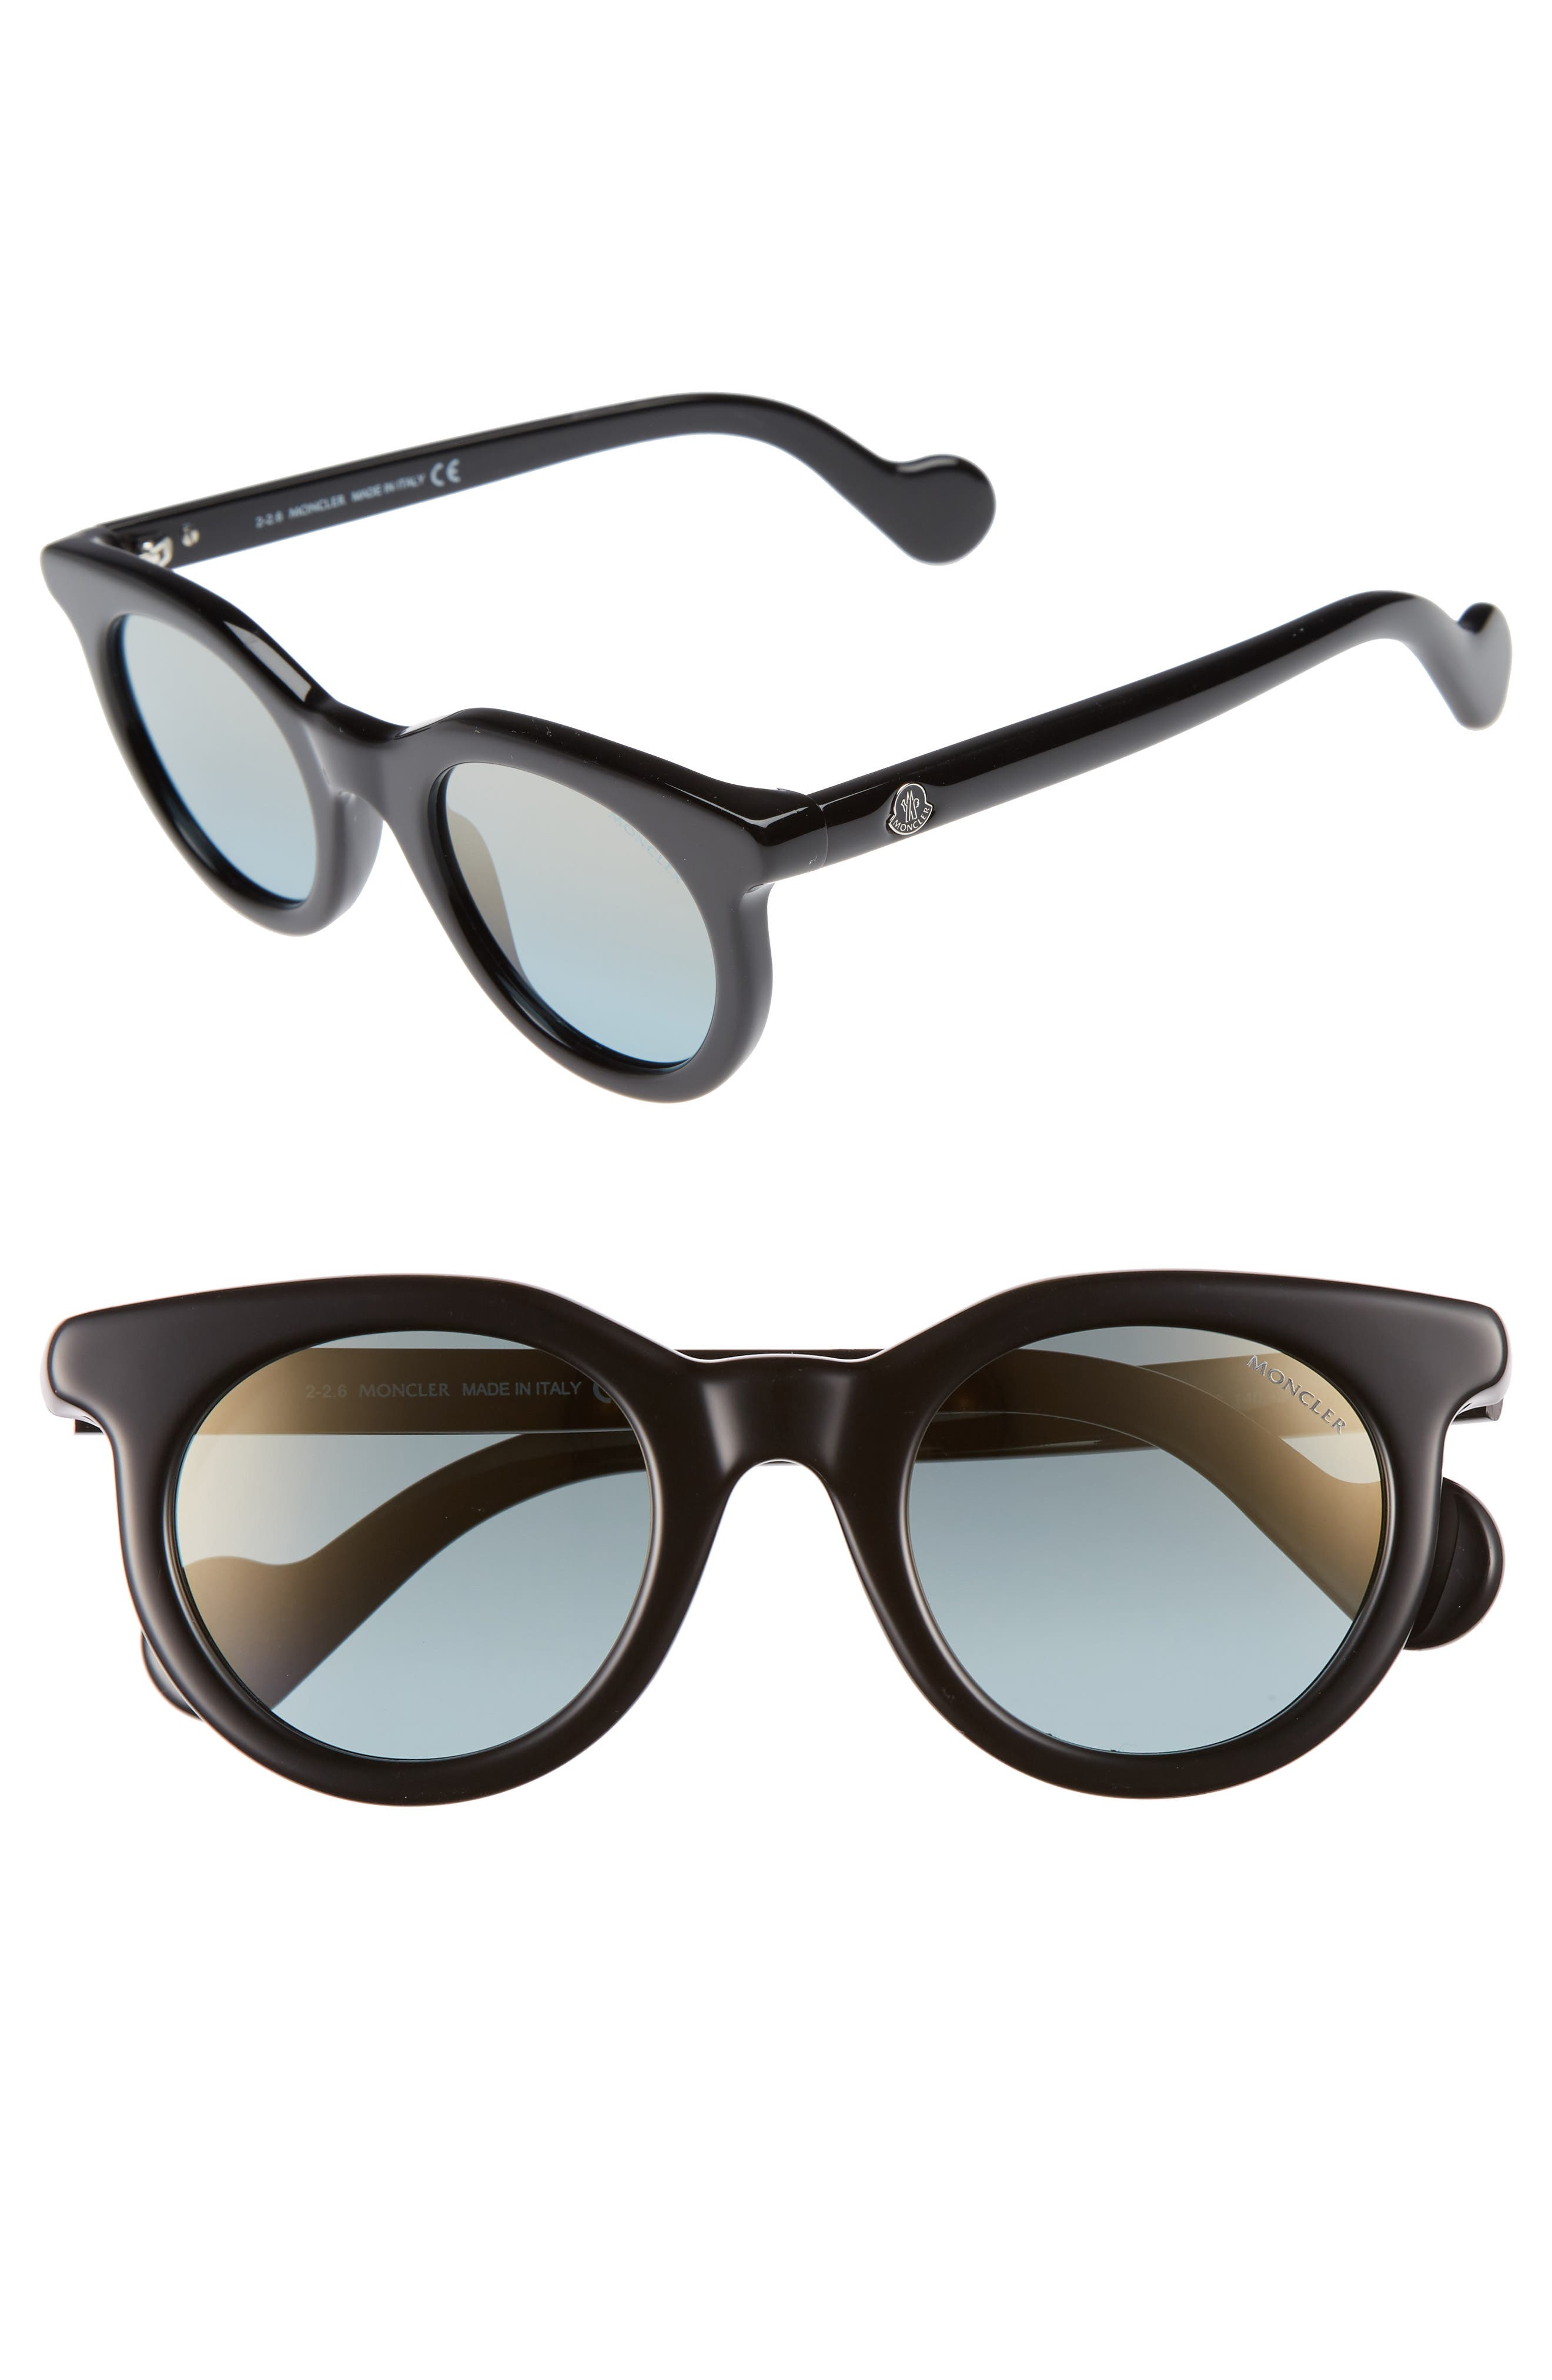 47mm Sunglasses,                         Main,                         color, Shiny Black/ Blue Mirror